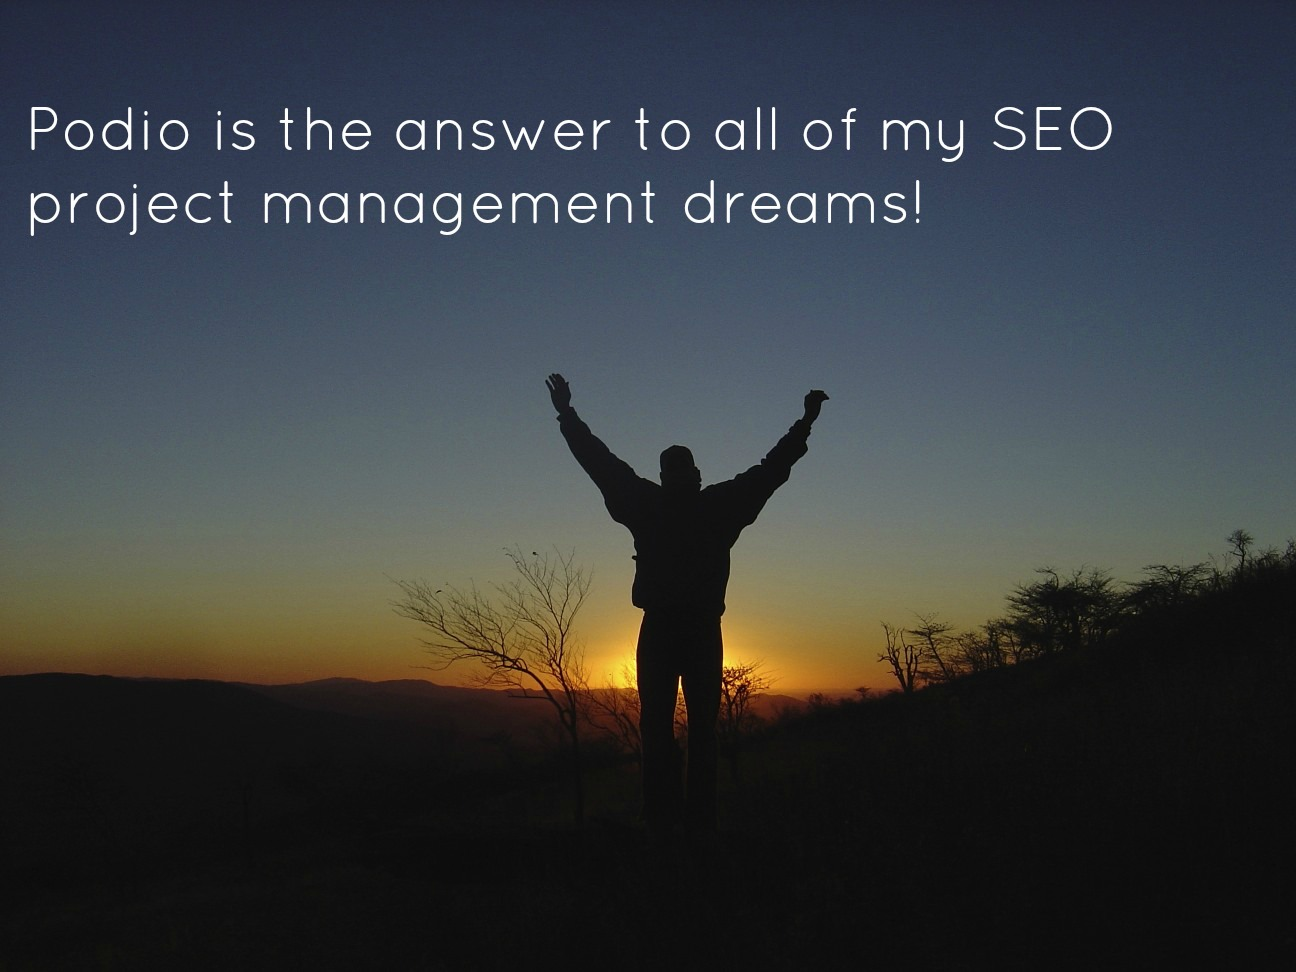 How to use Podio for SEO